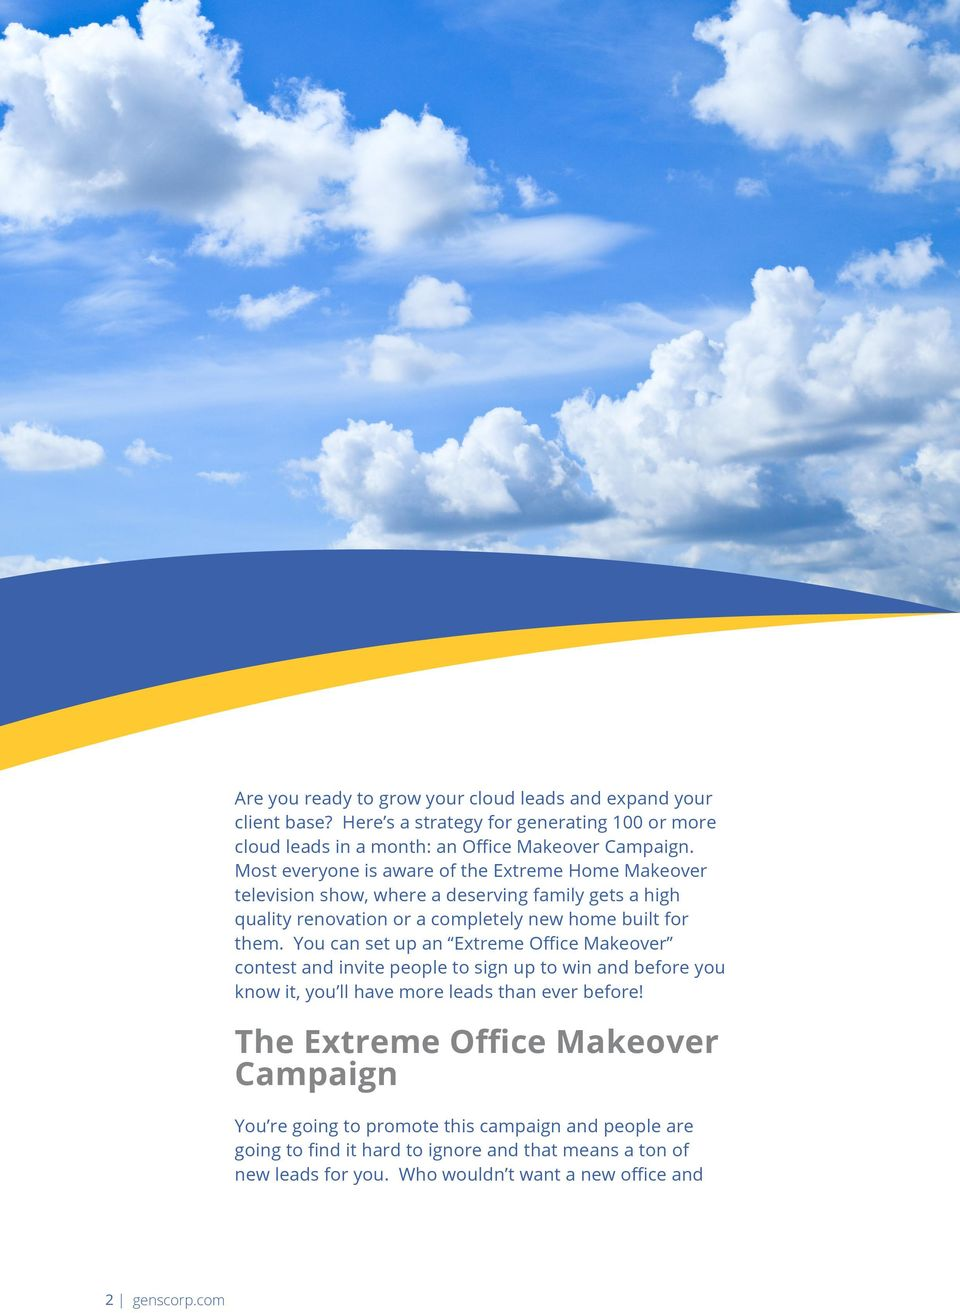 You can set up an Extreme Office Makeover contest and invite people to sign up to win and before you know it, you ll have more leads than ever before!